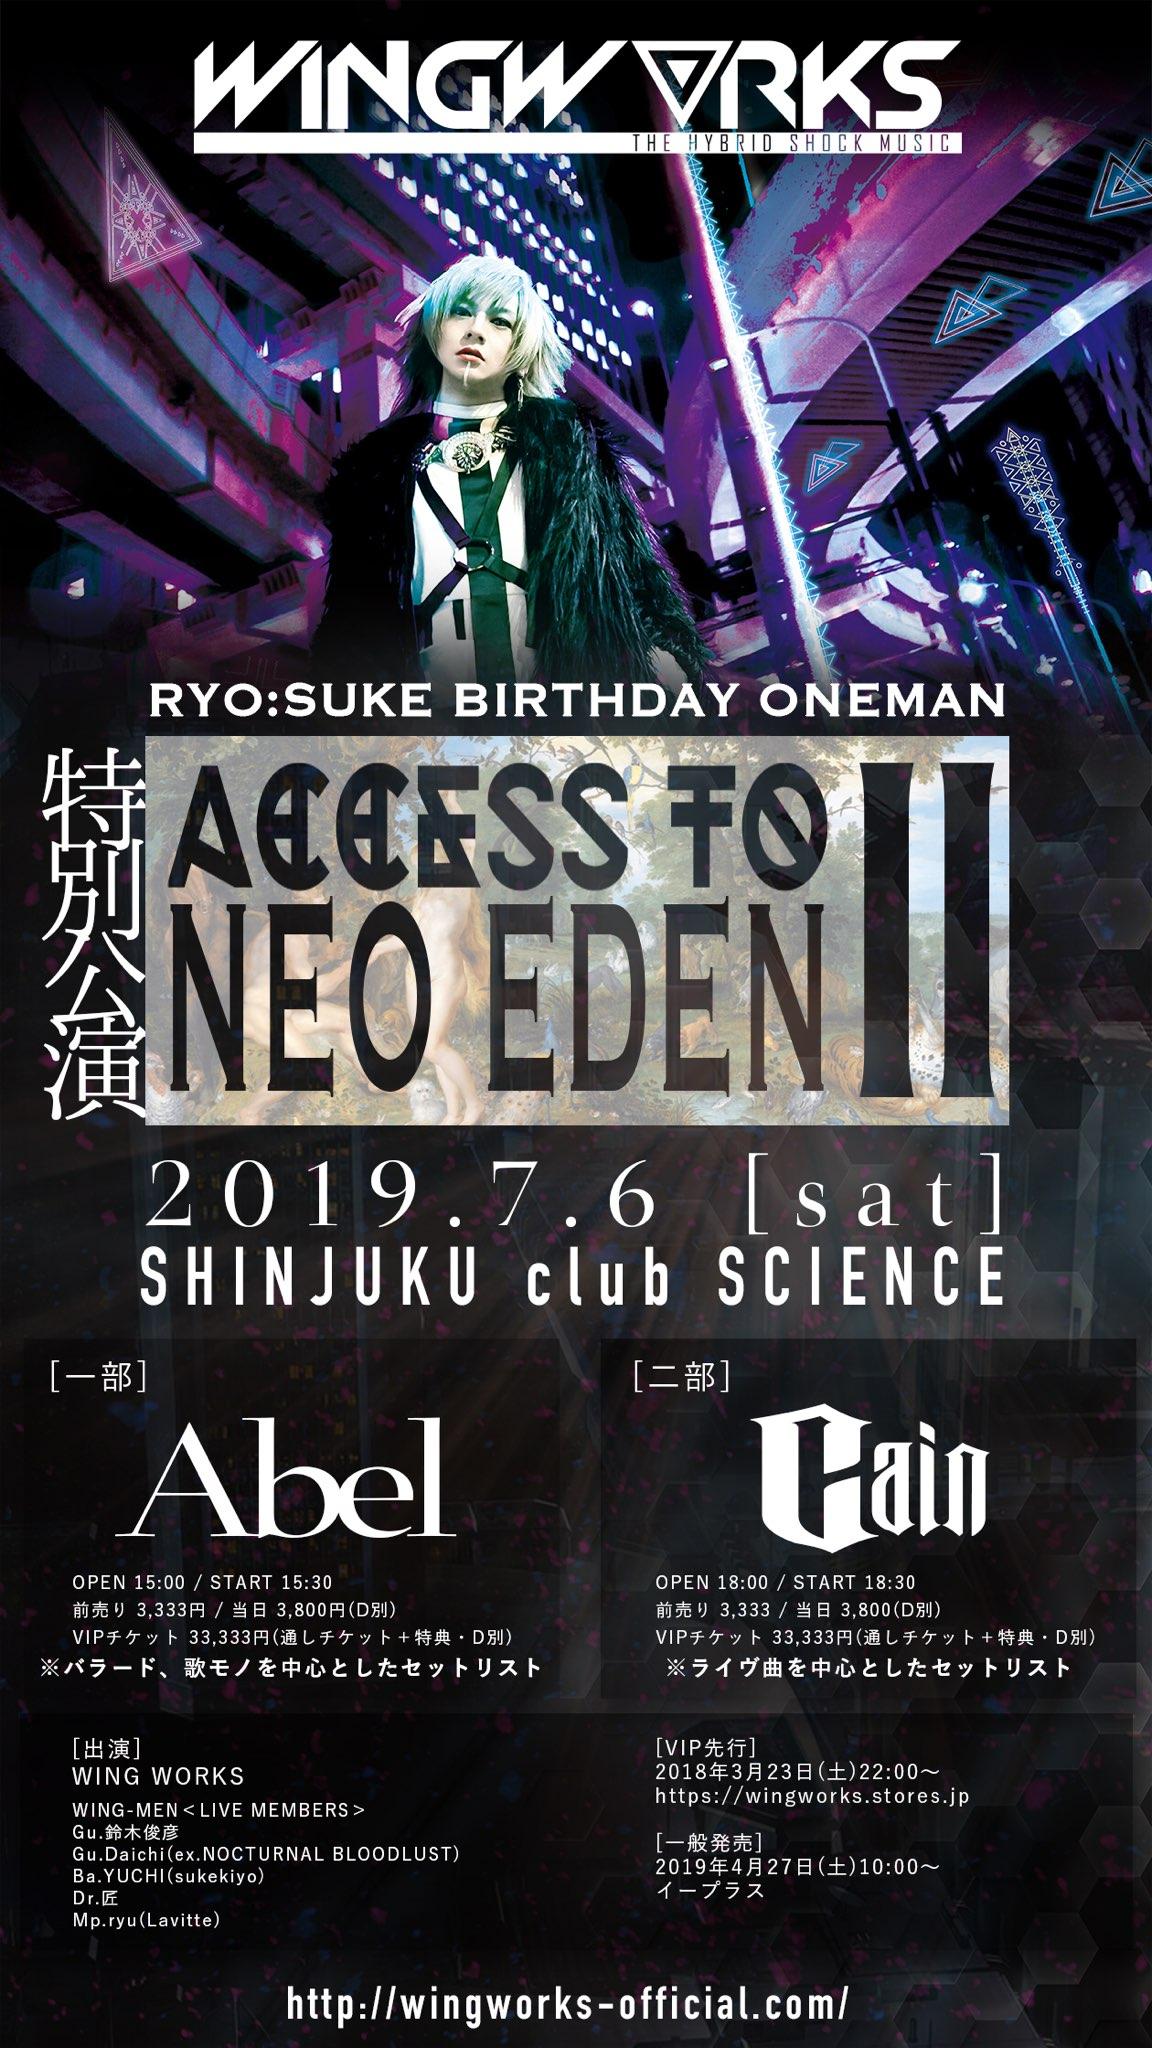 WING WORKS 2019.07.06(土) 新宿club SCIENCE WING WORKS特別公演 RYO:SUKE BIRTHDAY ONEMAN 『ACCESS TO NEO EDEN II』 | ヴィジュアル系ポータルサイト「ViSULOG」